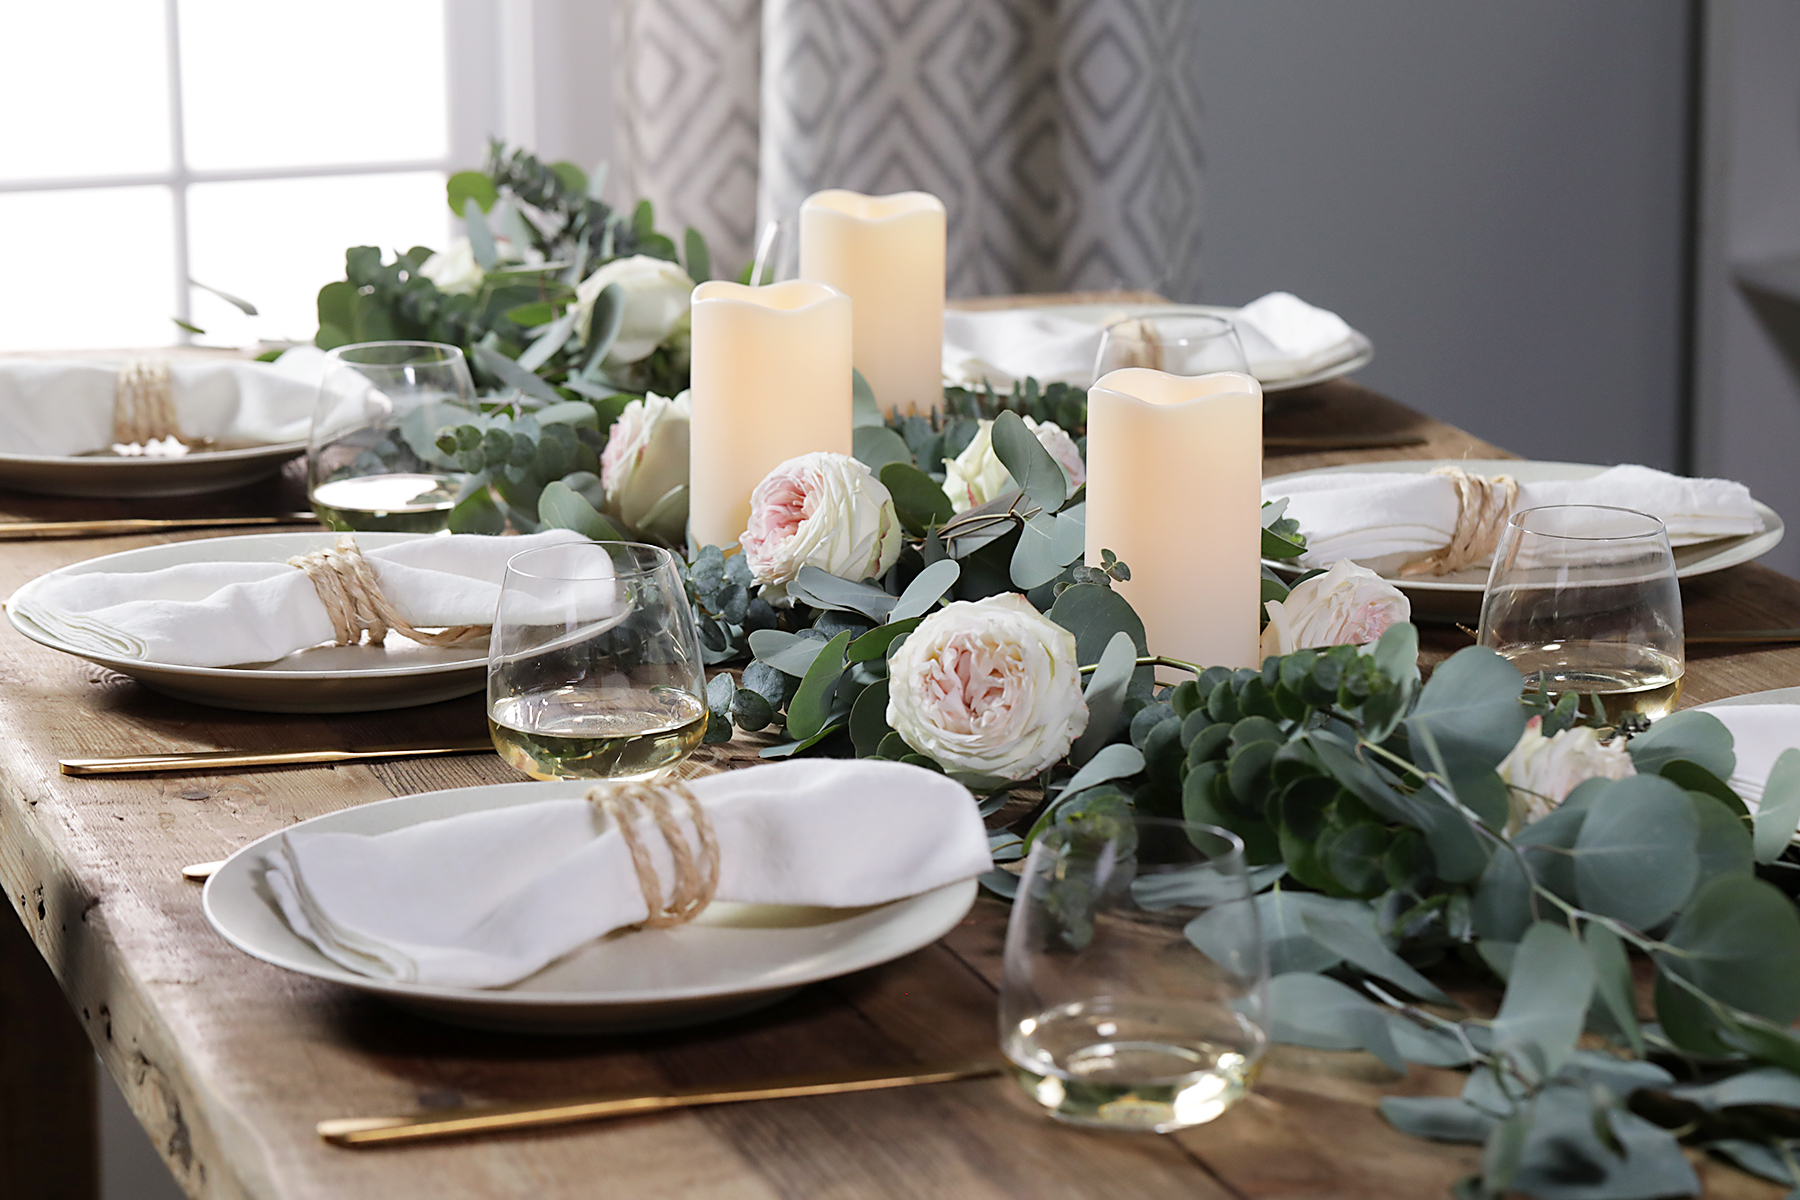 table decor with eucalyptus garland white candles place settings